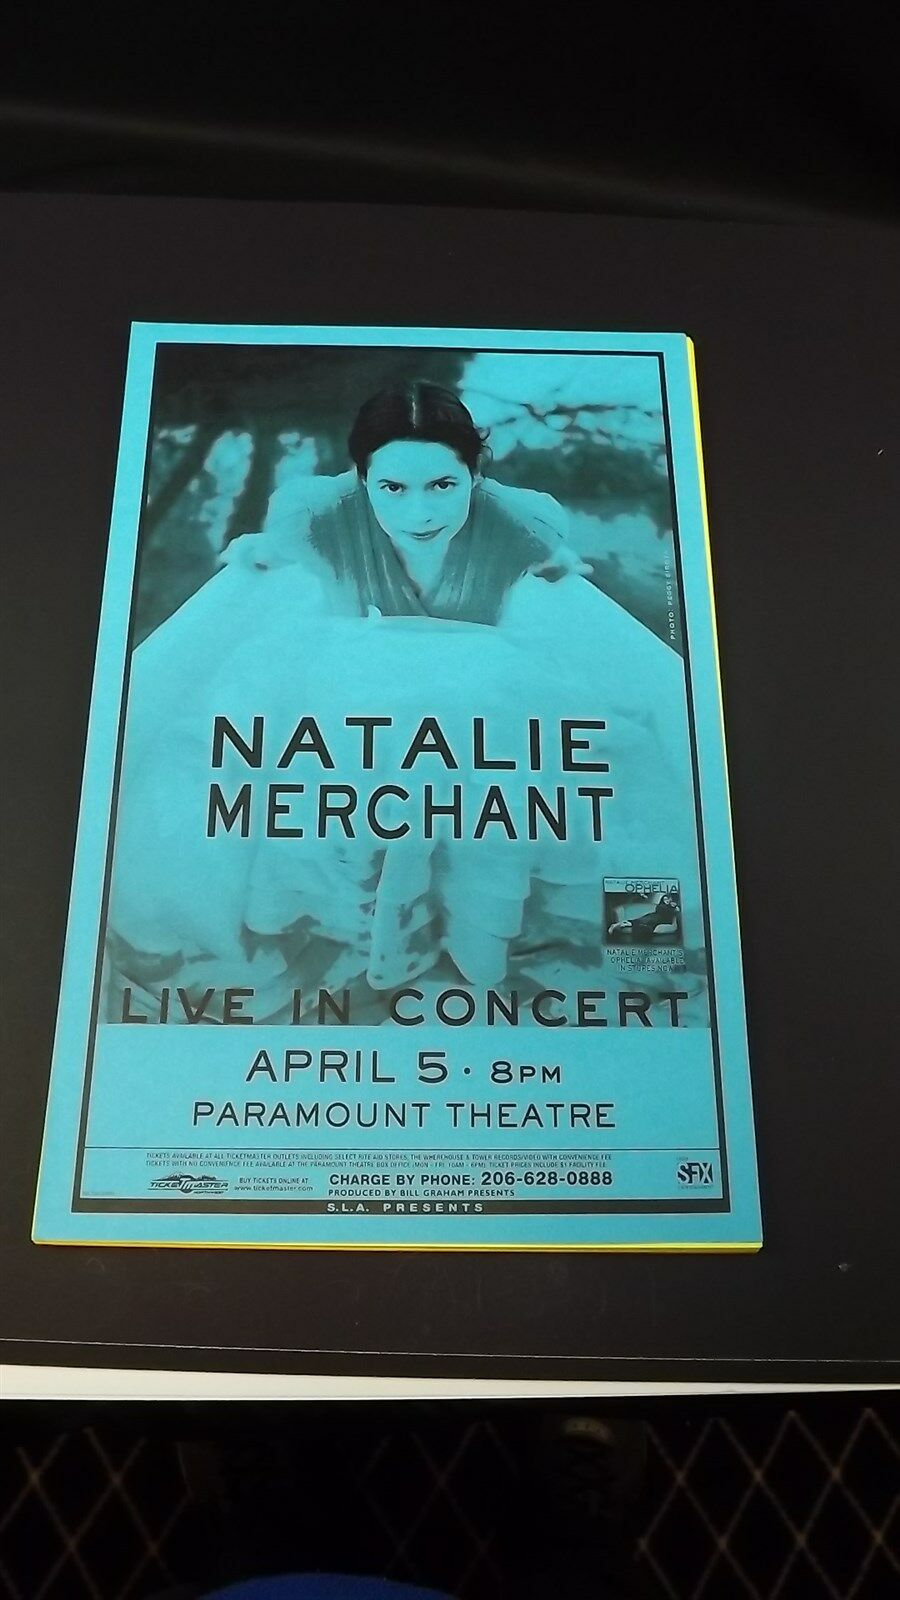 Genuine 1999 NATALIE MERCHANT Live In Concert Paramount Theatre Poster Flyer Ad 1